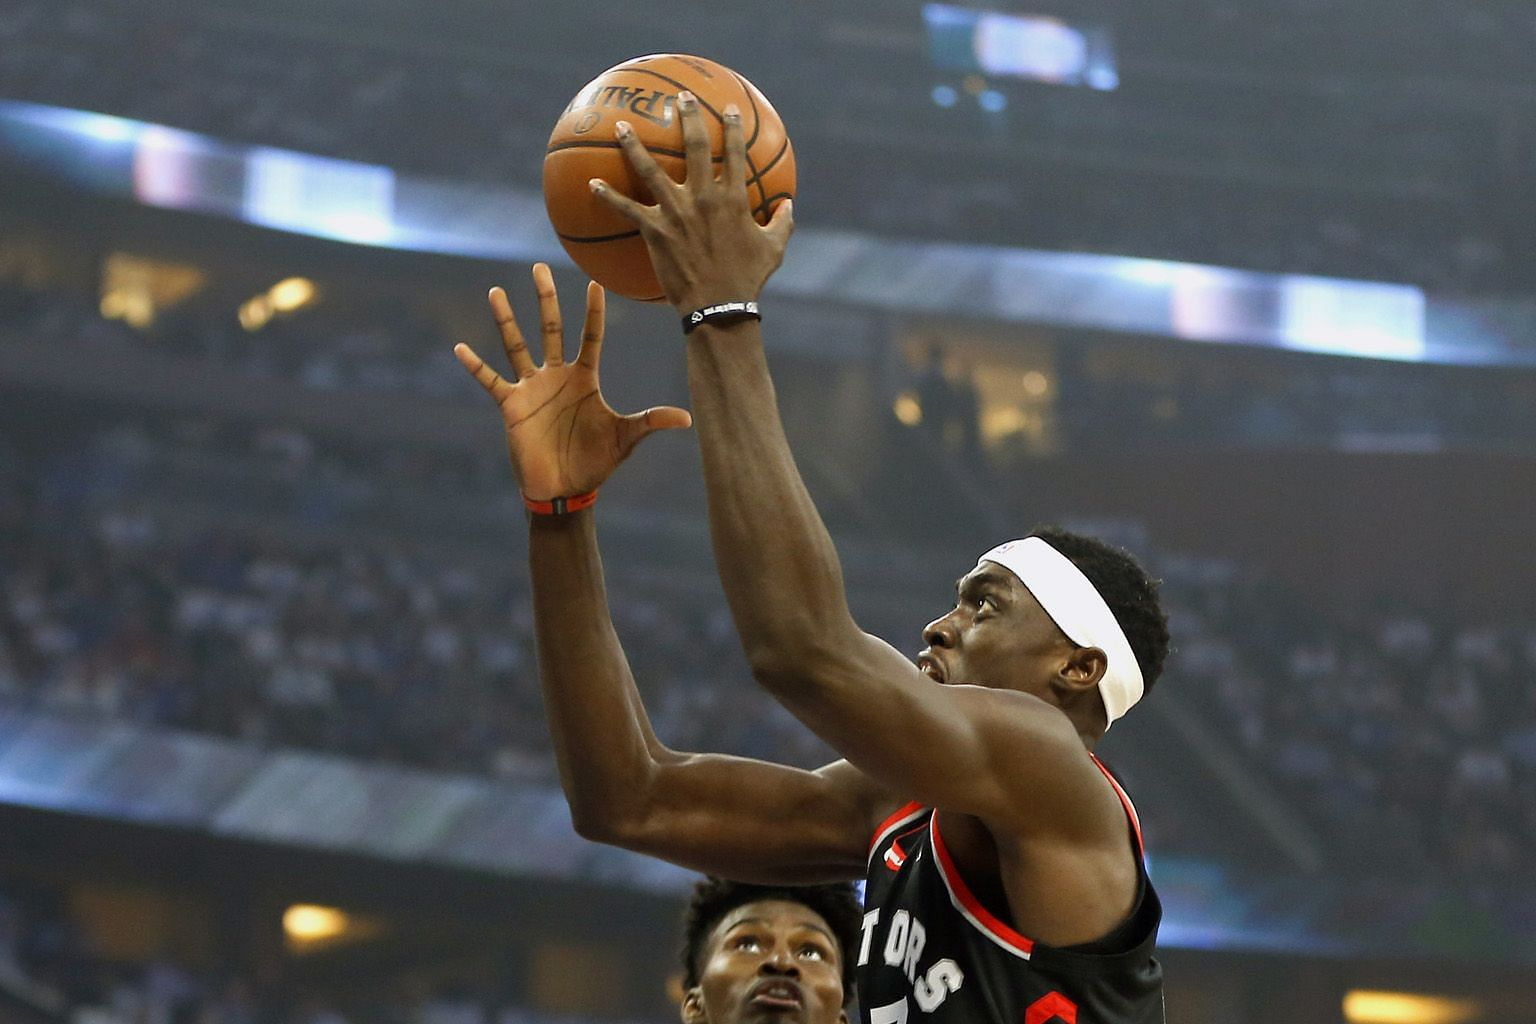 Toronto Raptors forward Pascal Siakam driving past his Orlando Magic counterpart Jonathan Isaac to the basket during Game 3 of the first round of the NBA play-offs at Amway Centre, Orlando, on Friday. The Raptors won 98-93 to lead the series 2-1. PHO